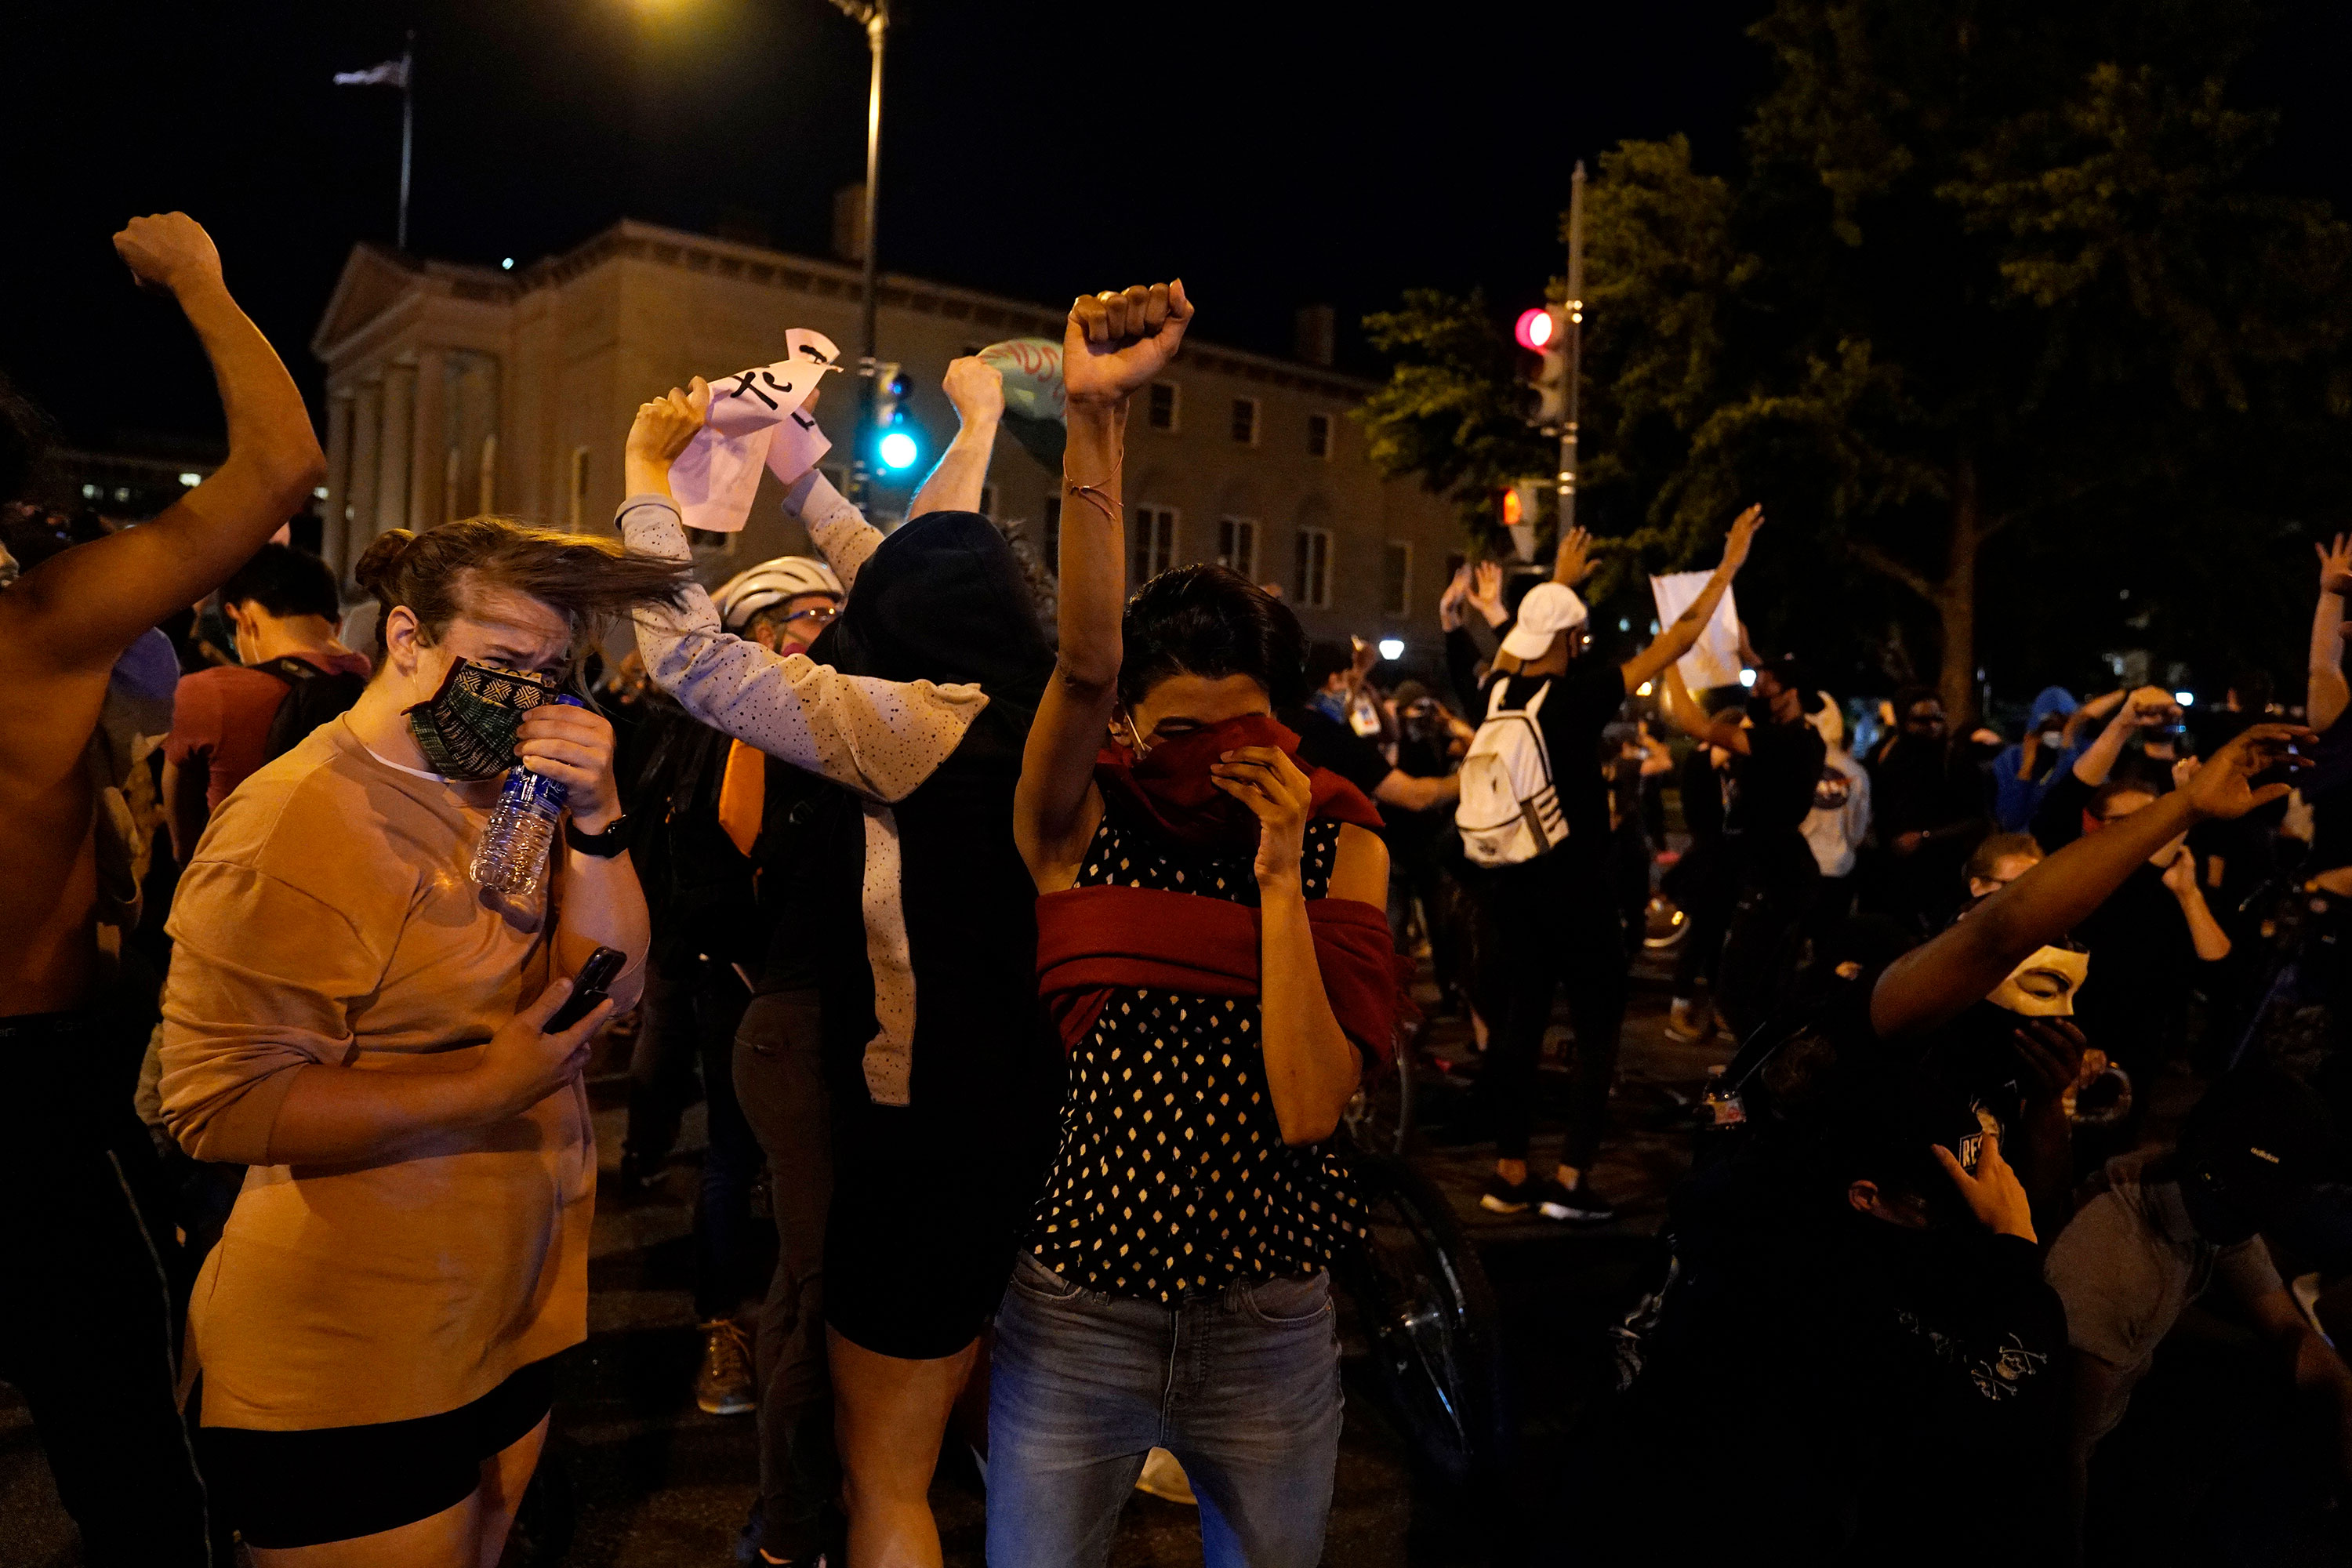 Demonstrators react as a helicopter circles low overhead near the White House in Washington on June 1.